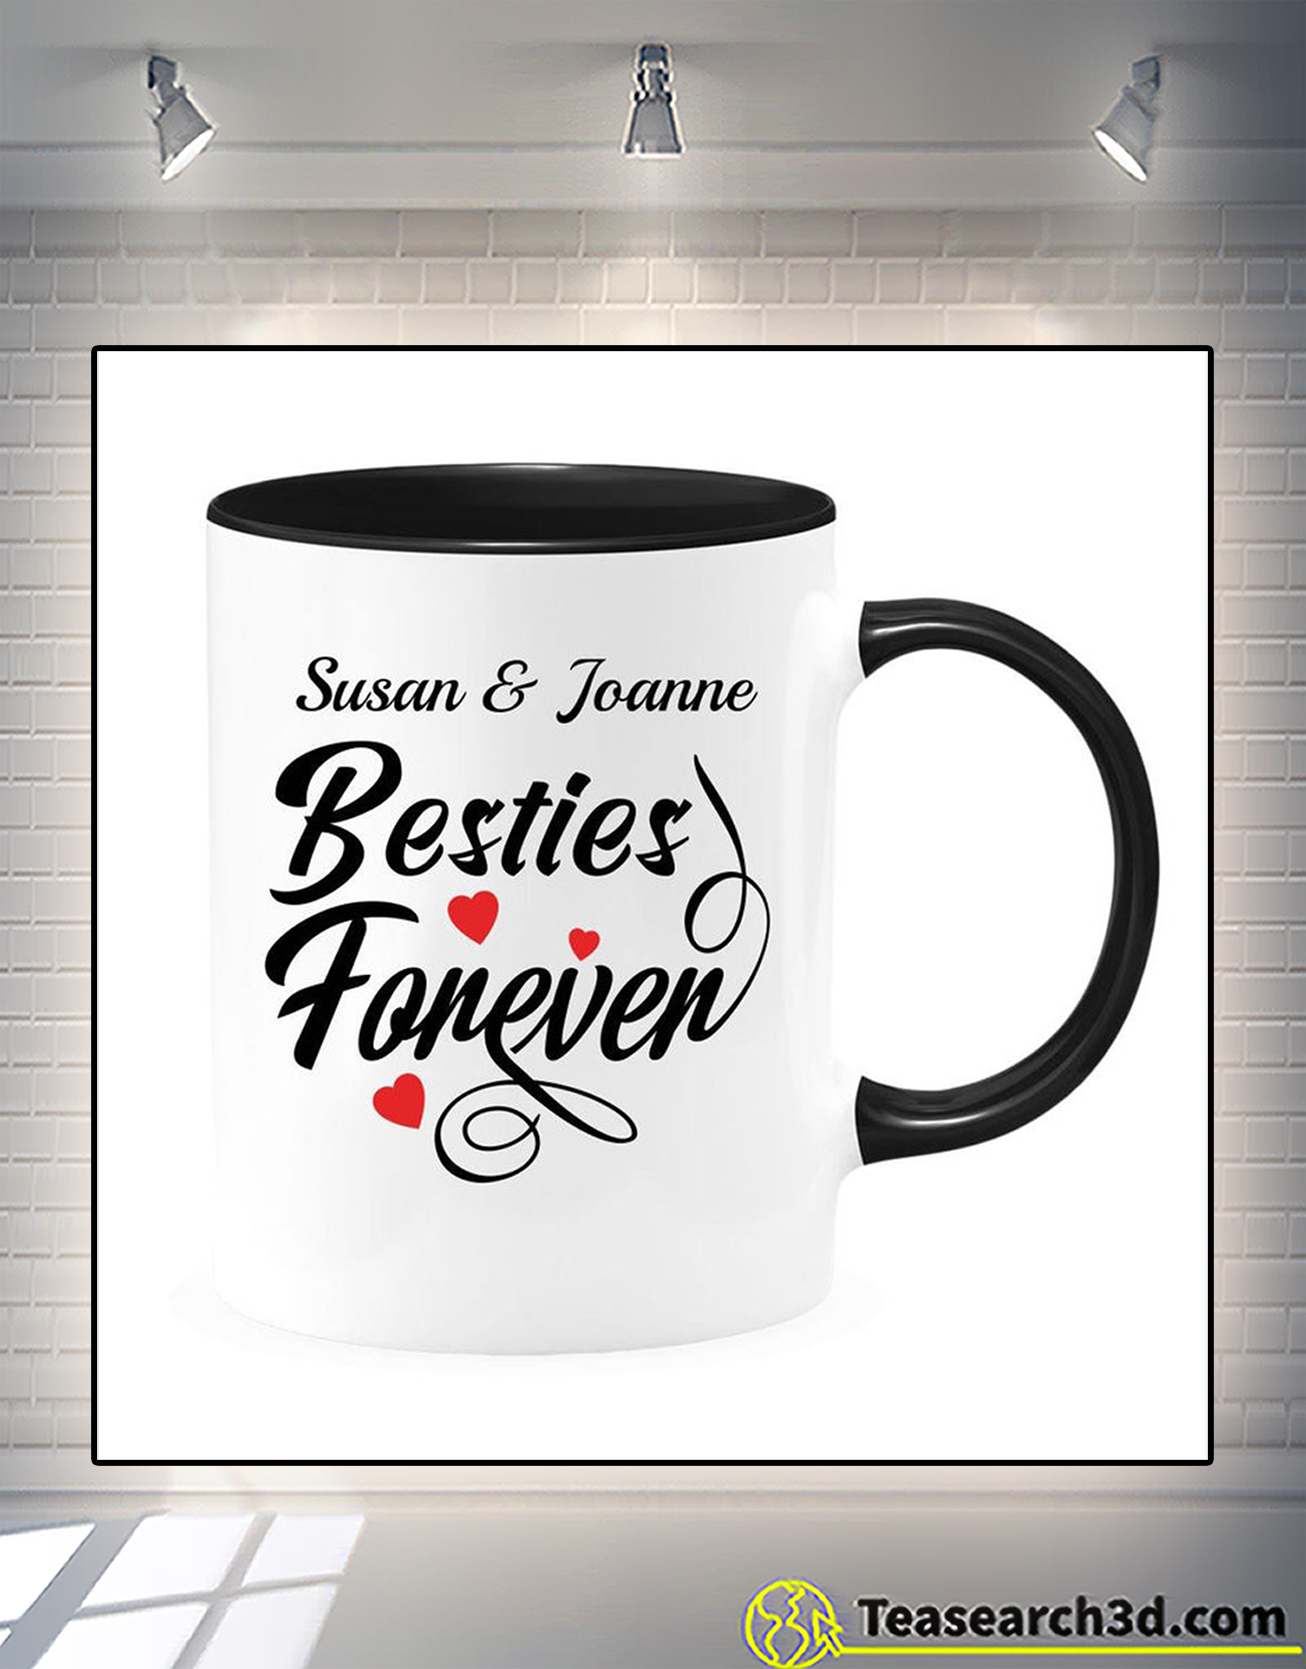 Personalized custom name besties foneven accent mug 1